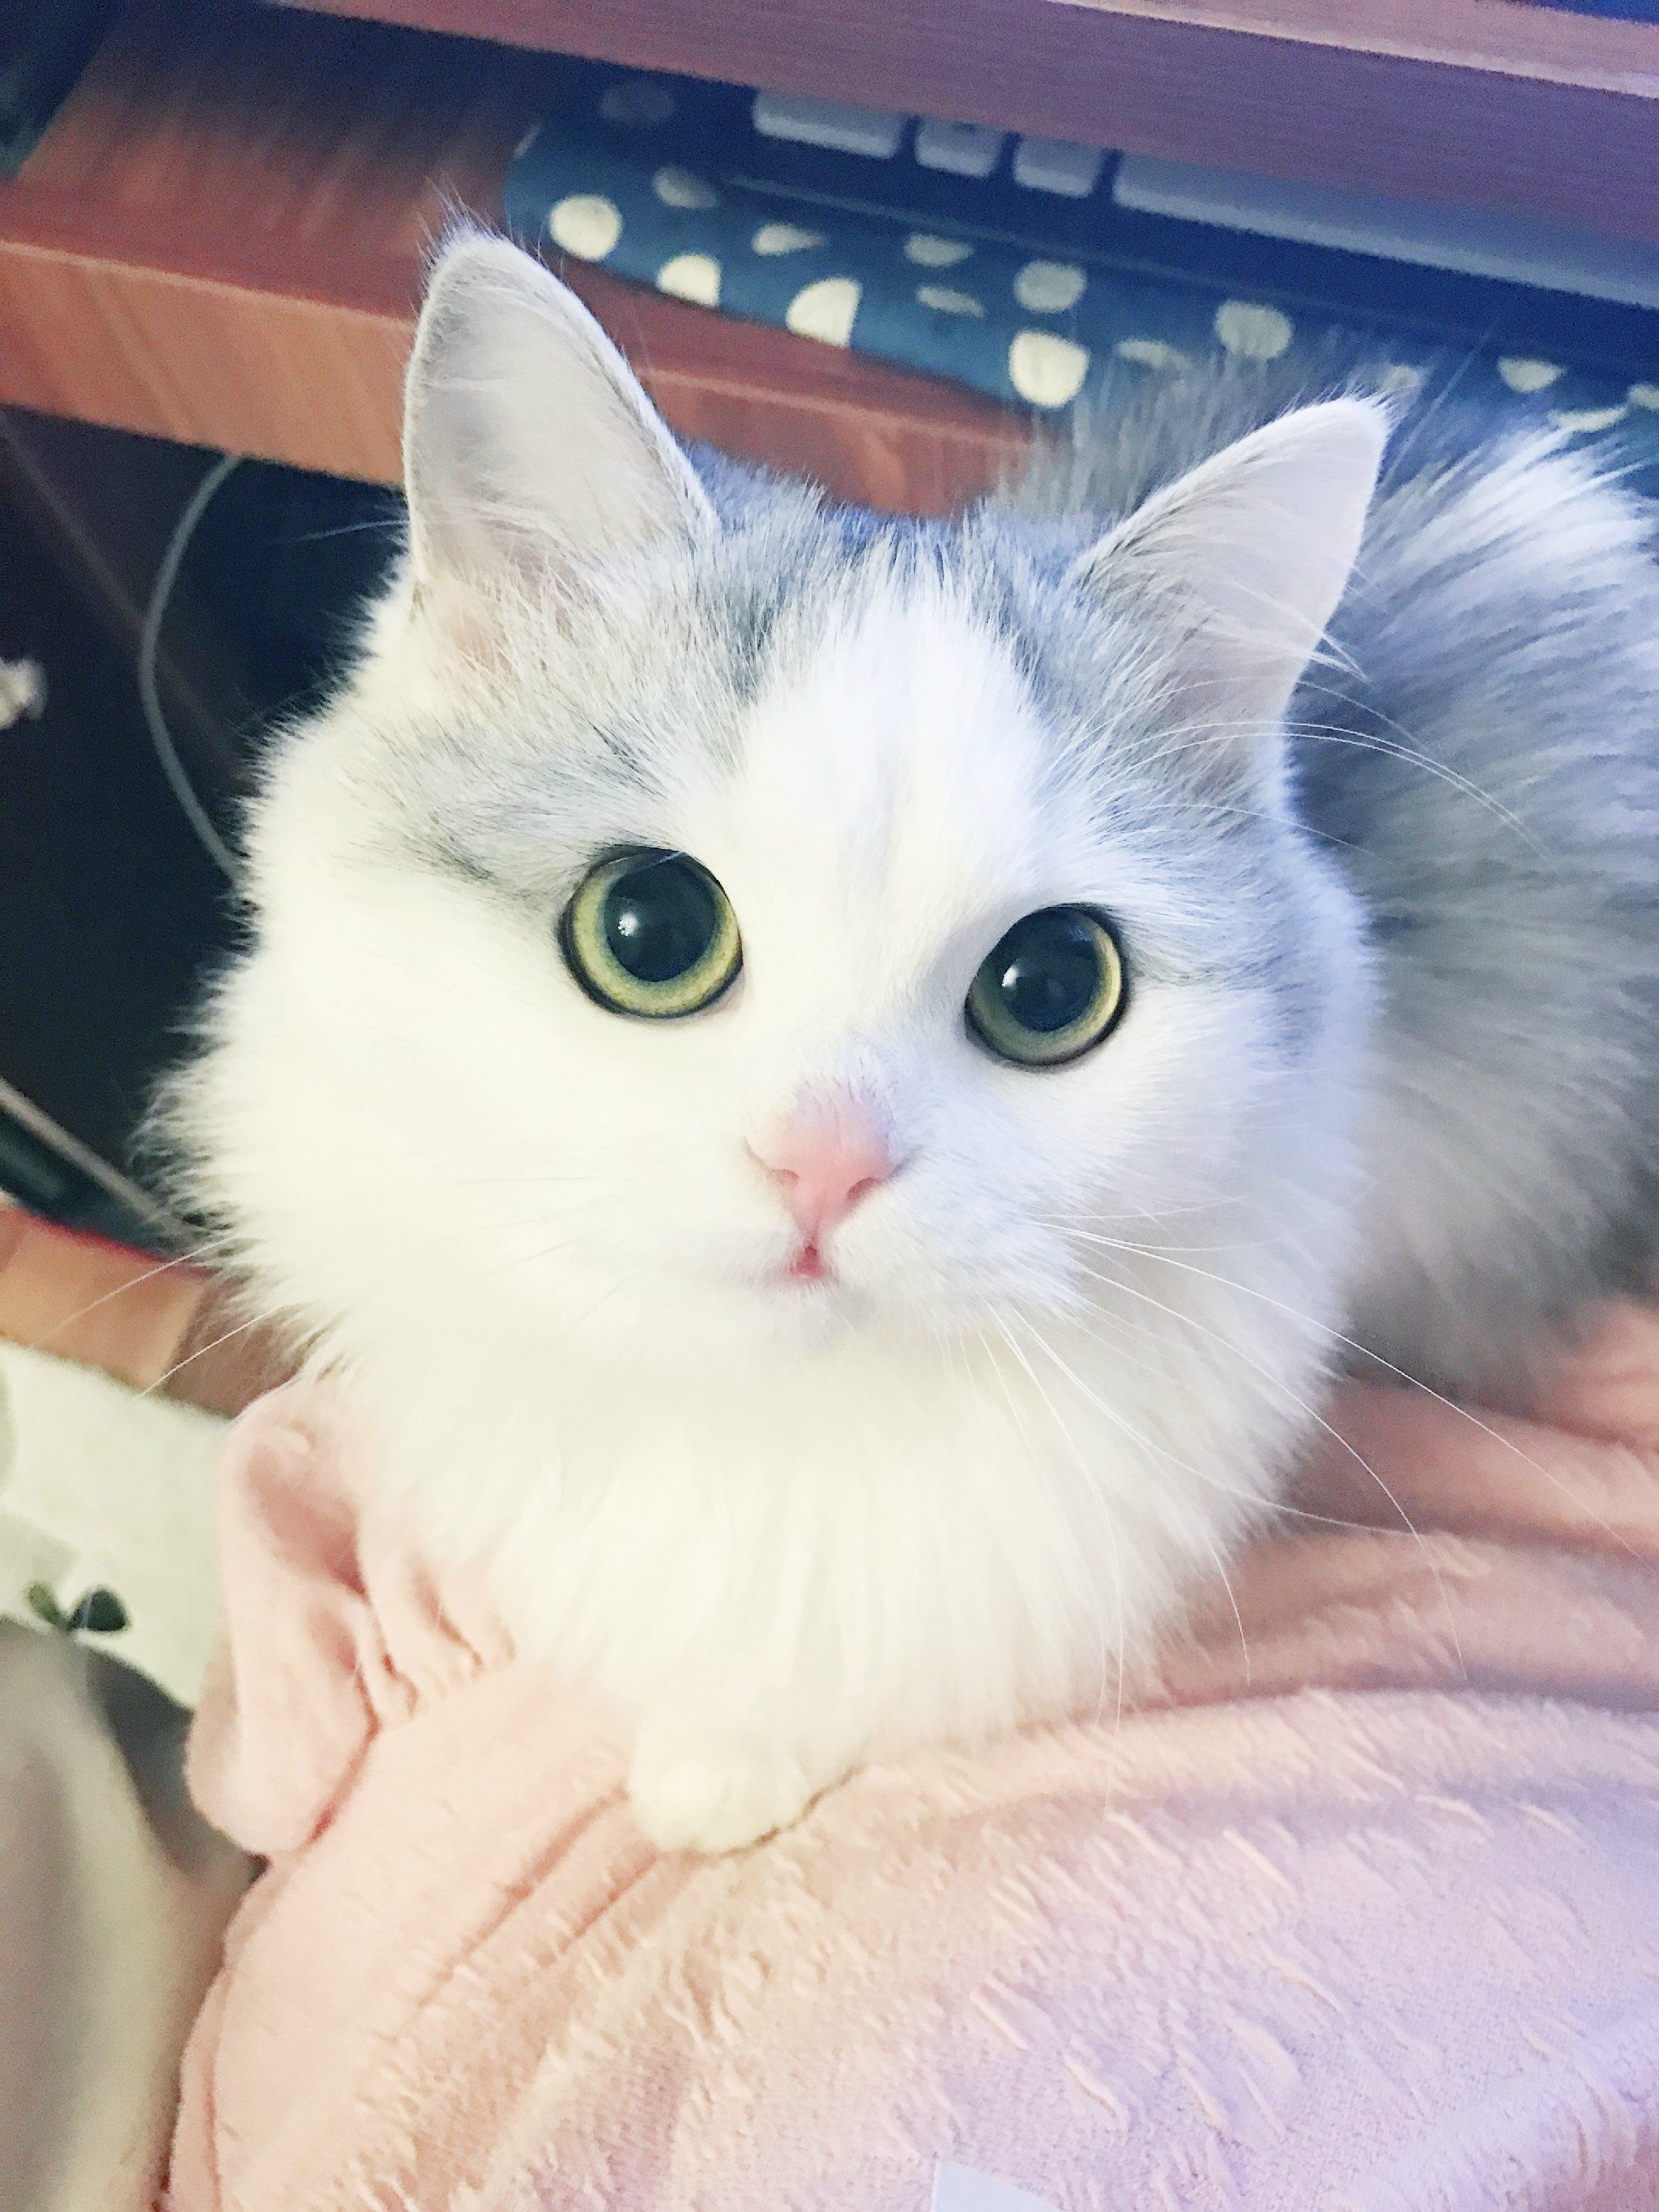 Pin By ลรฬลล ลββลร On Kitten Pinterest Cat Animal And - This is pam pam the kitten with heterochromia with hypnotic eyes you just cant stop looking at